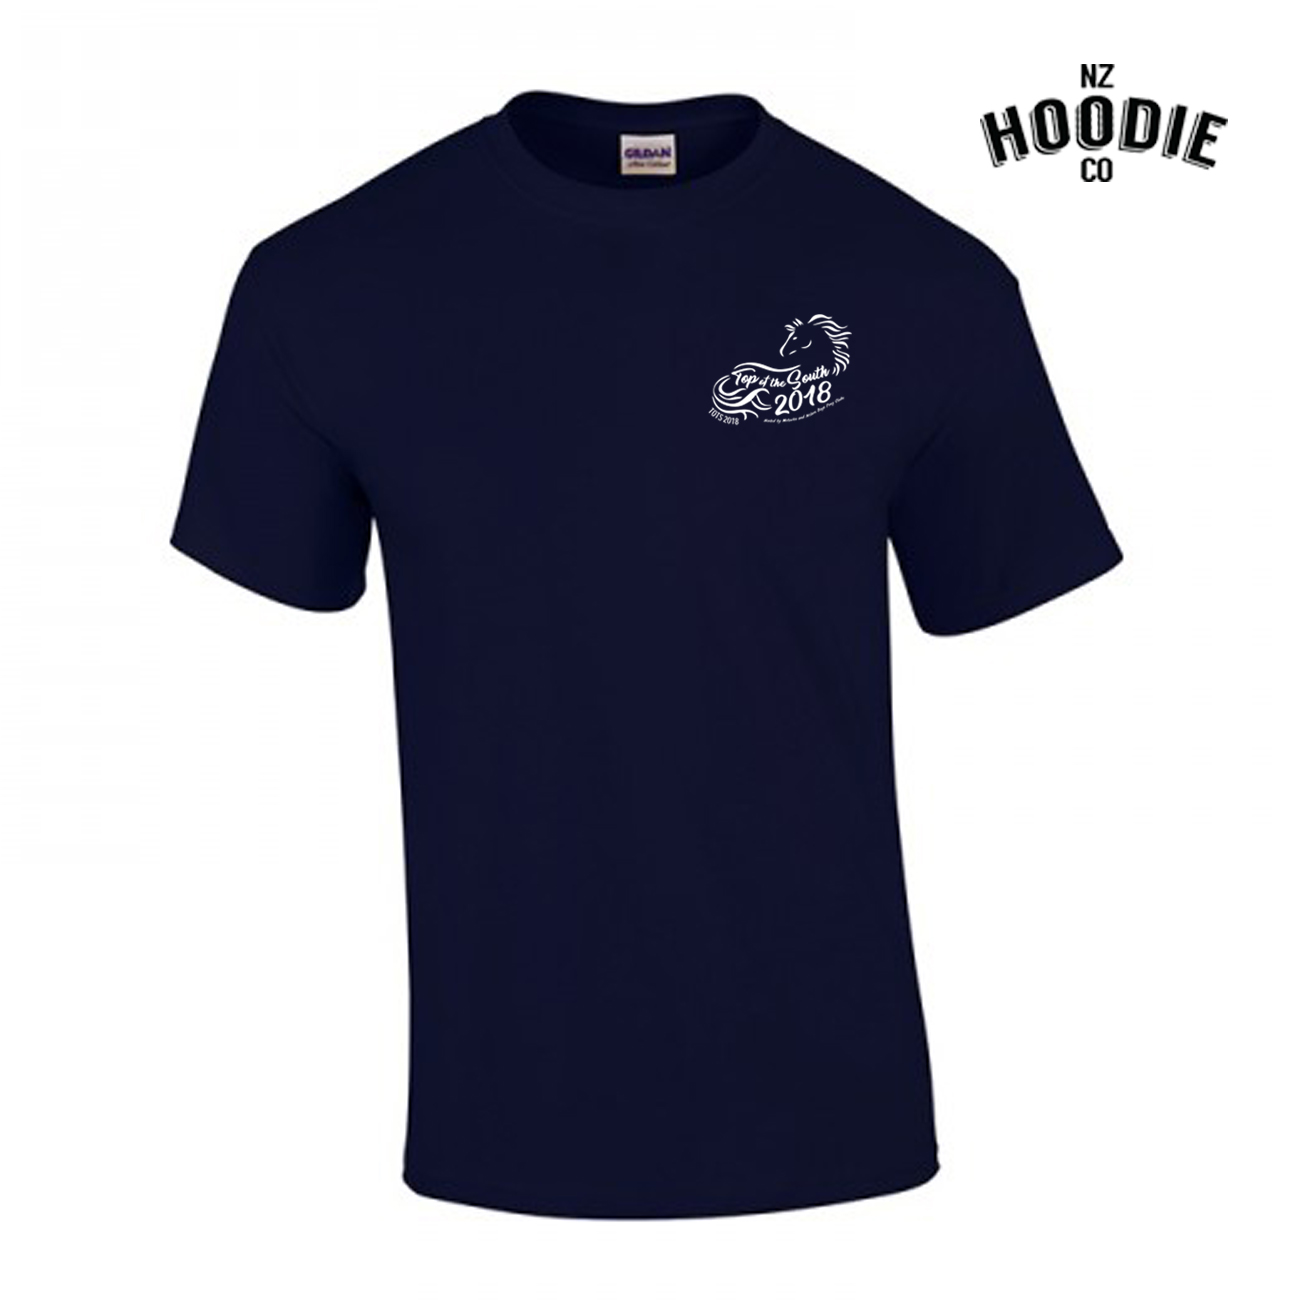 Top of the South Navy Tee One colour WHITE.jpg